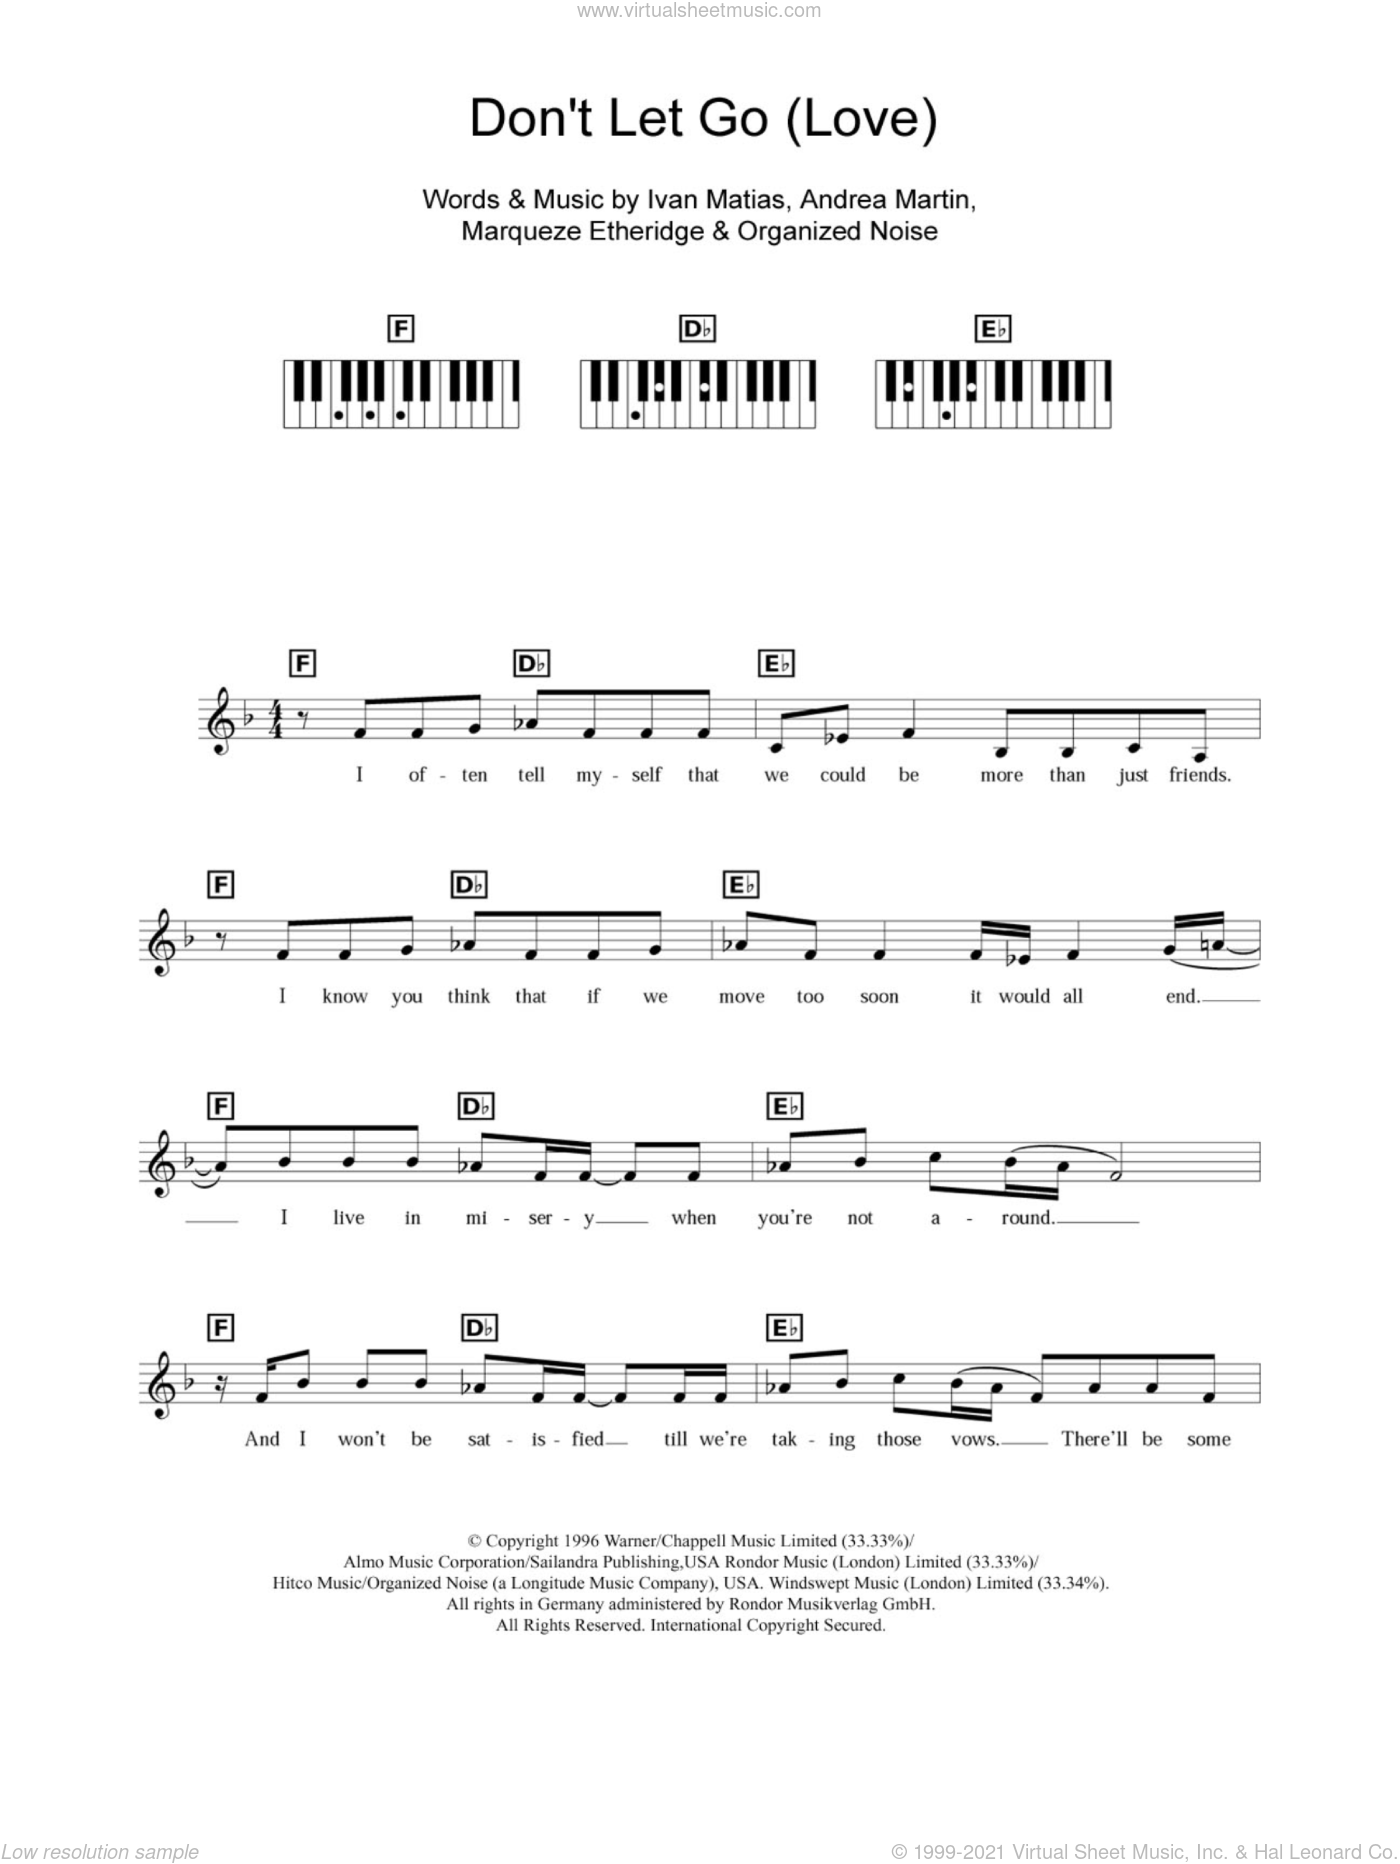 Don't Let Go (Love) sheet music for piano solo (chords, lyrics, melody) by Organized Noise, Andrea Martin and Marqueze Etheridge